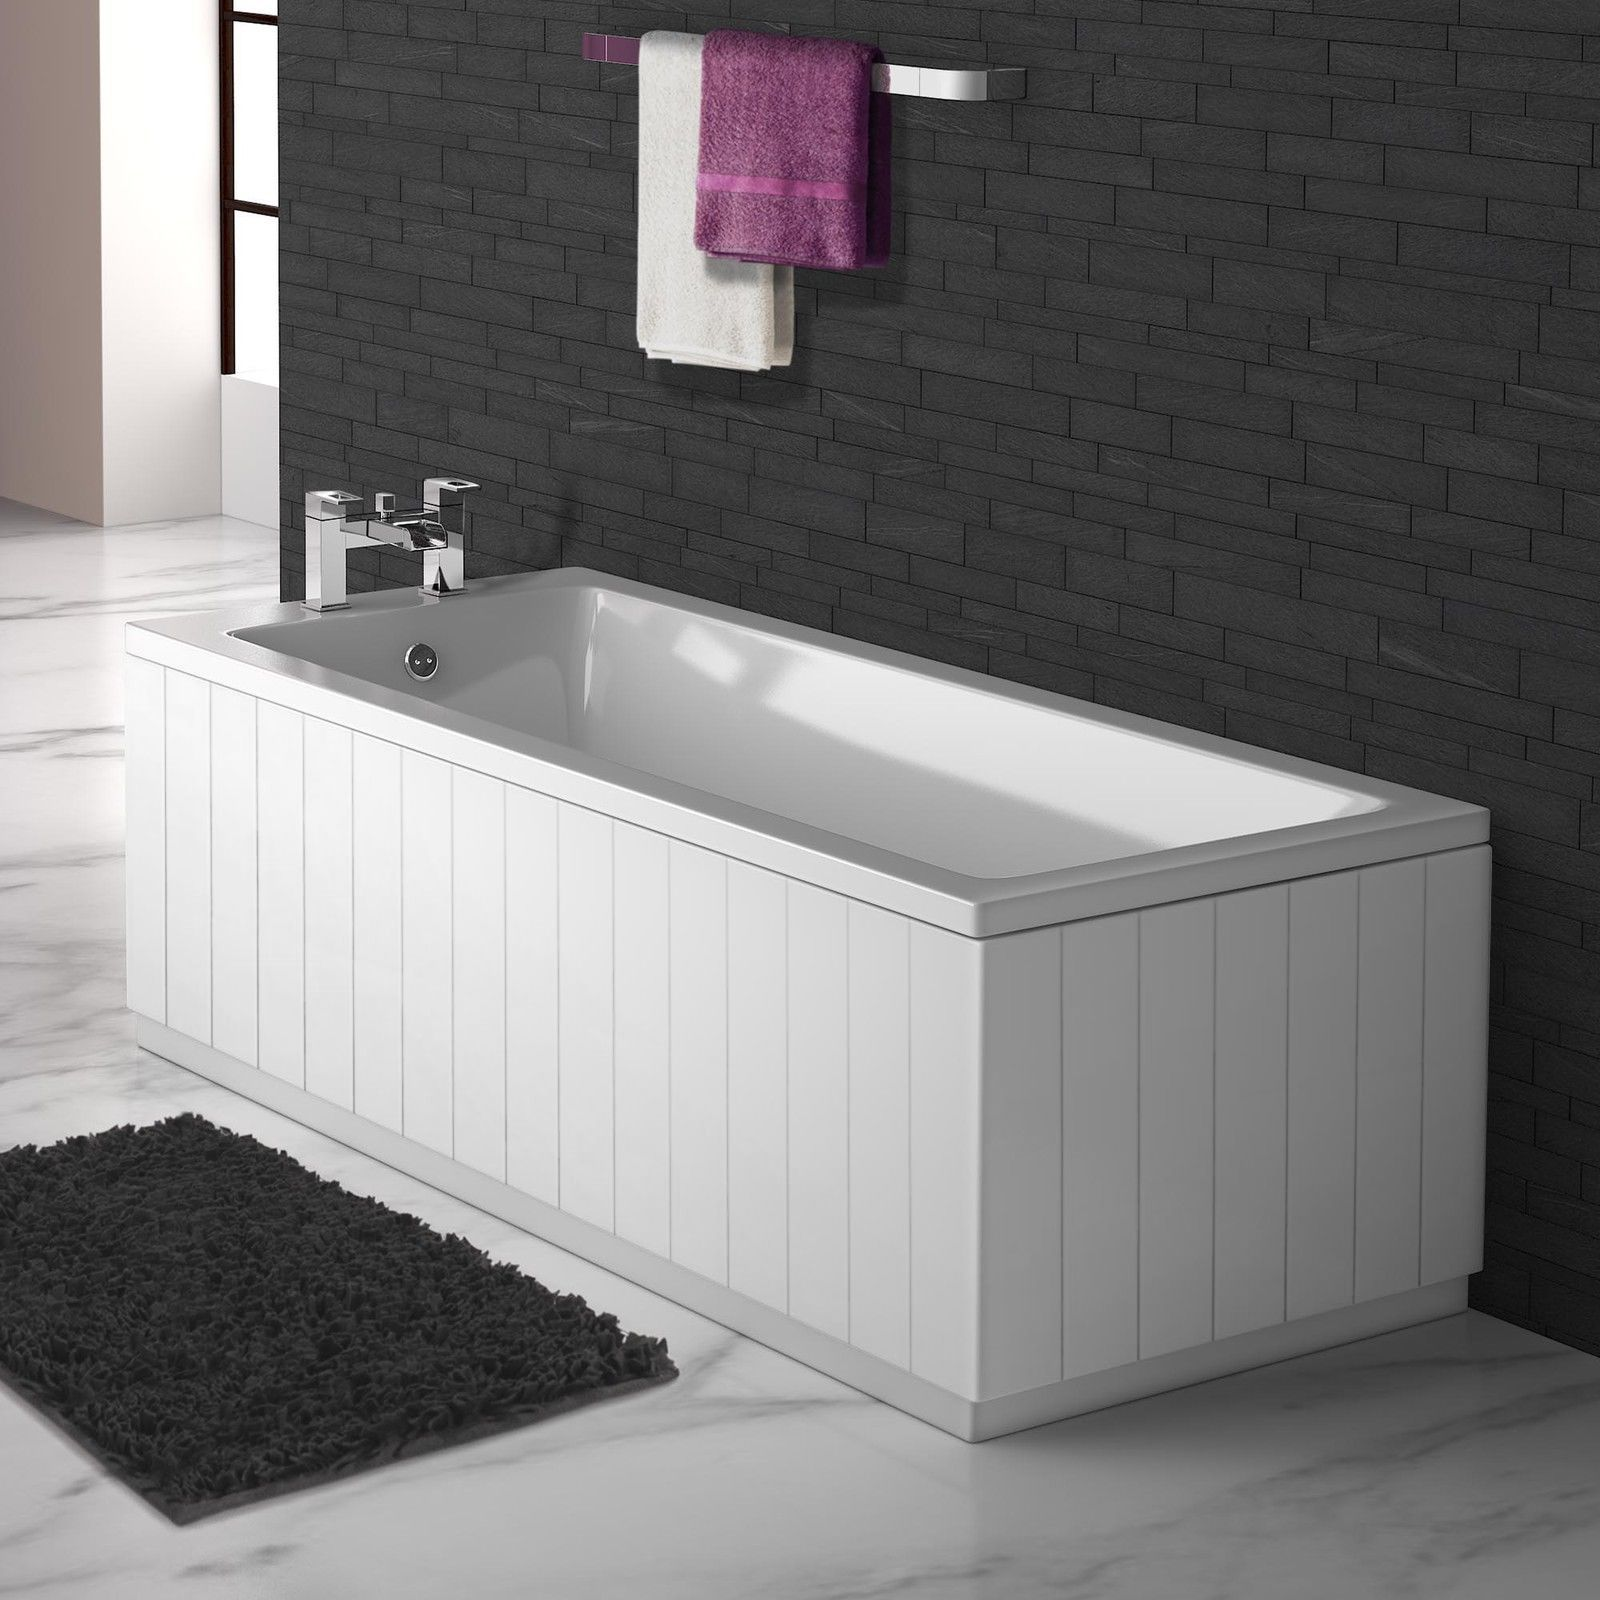 Tongue And Groove Matt White 2 Piece Adjustable Bath Panels